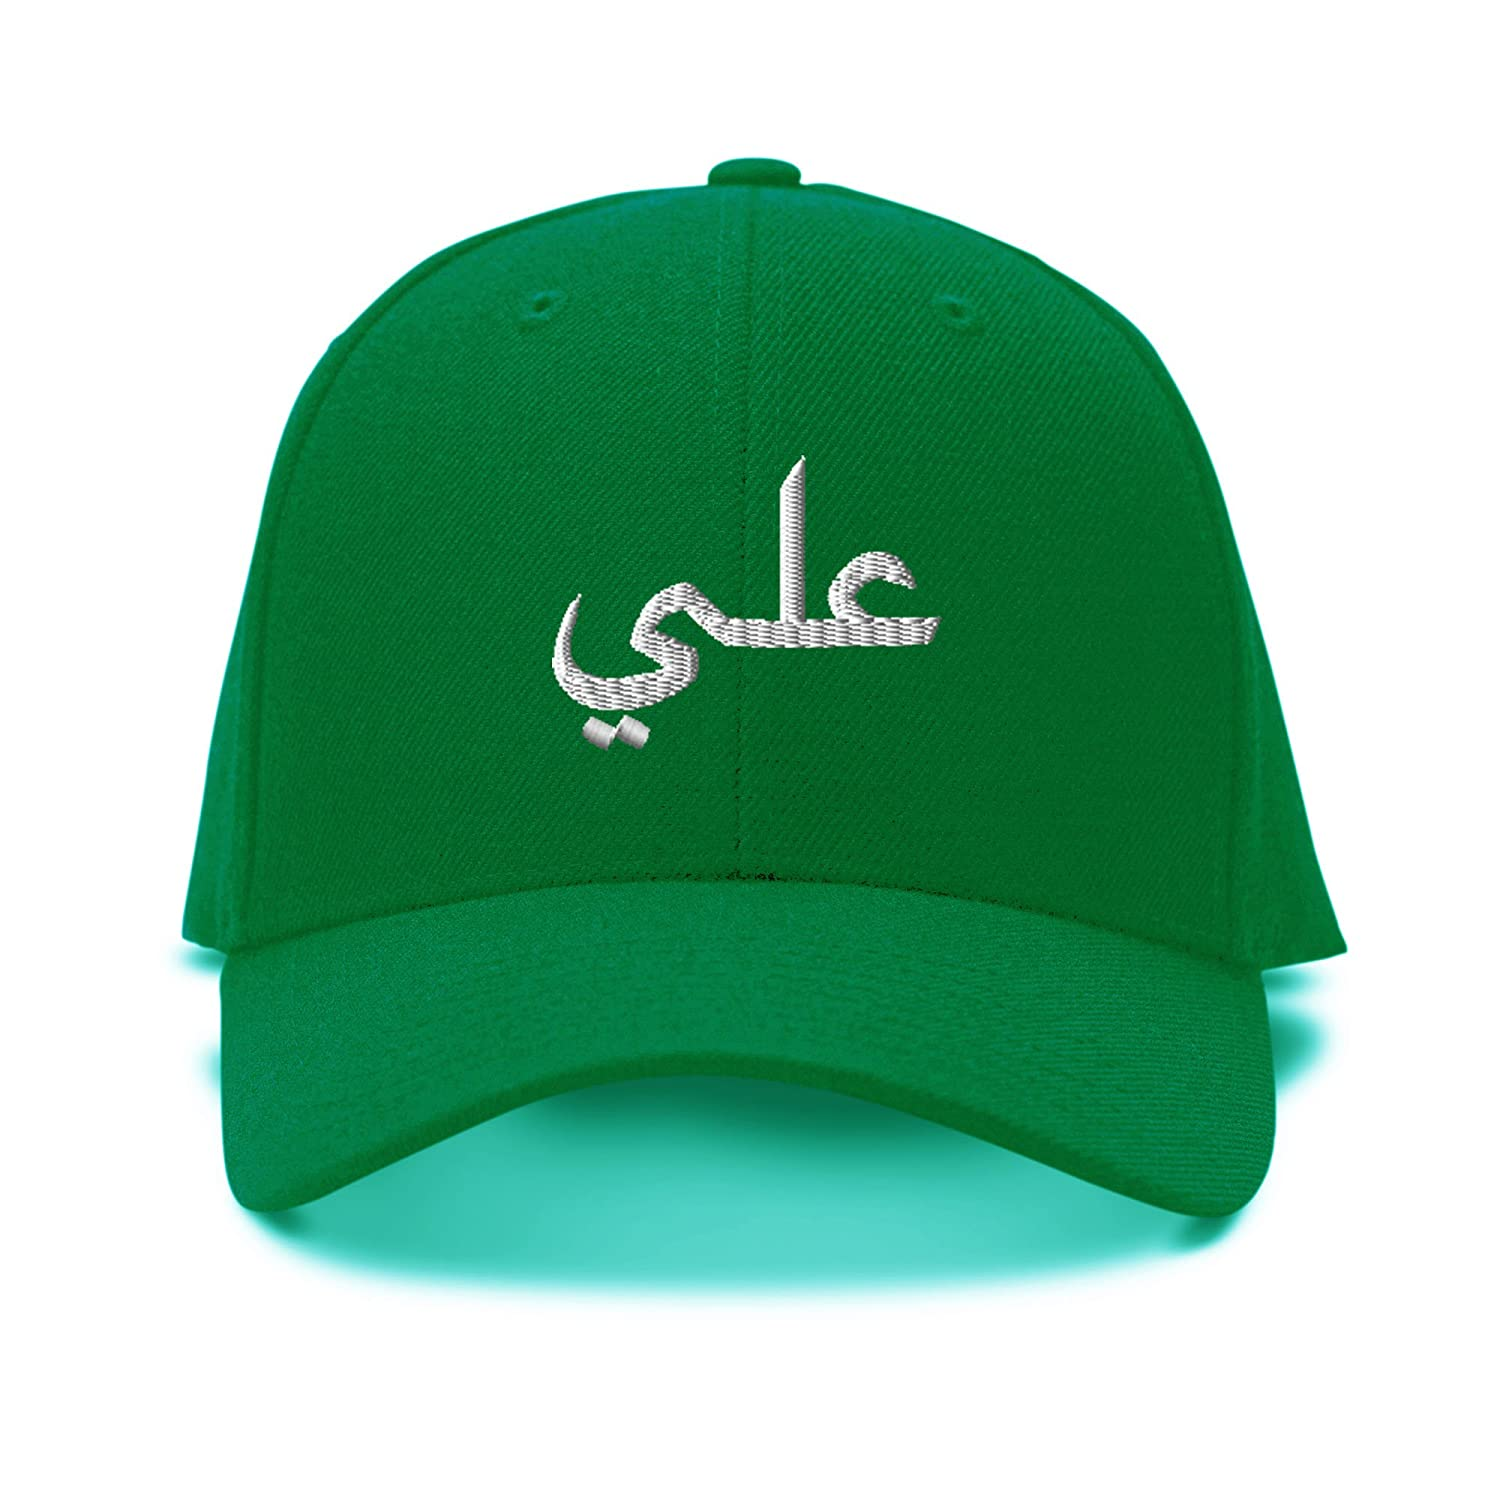 Ali Arabic Name White Embroidery Embroidered Adjustable Hat Baseball Cap CAPARAB0024W_B